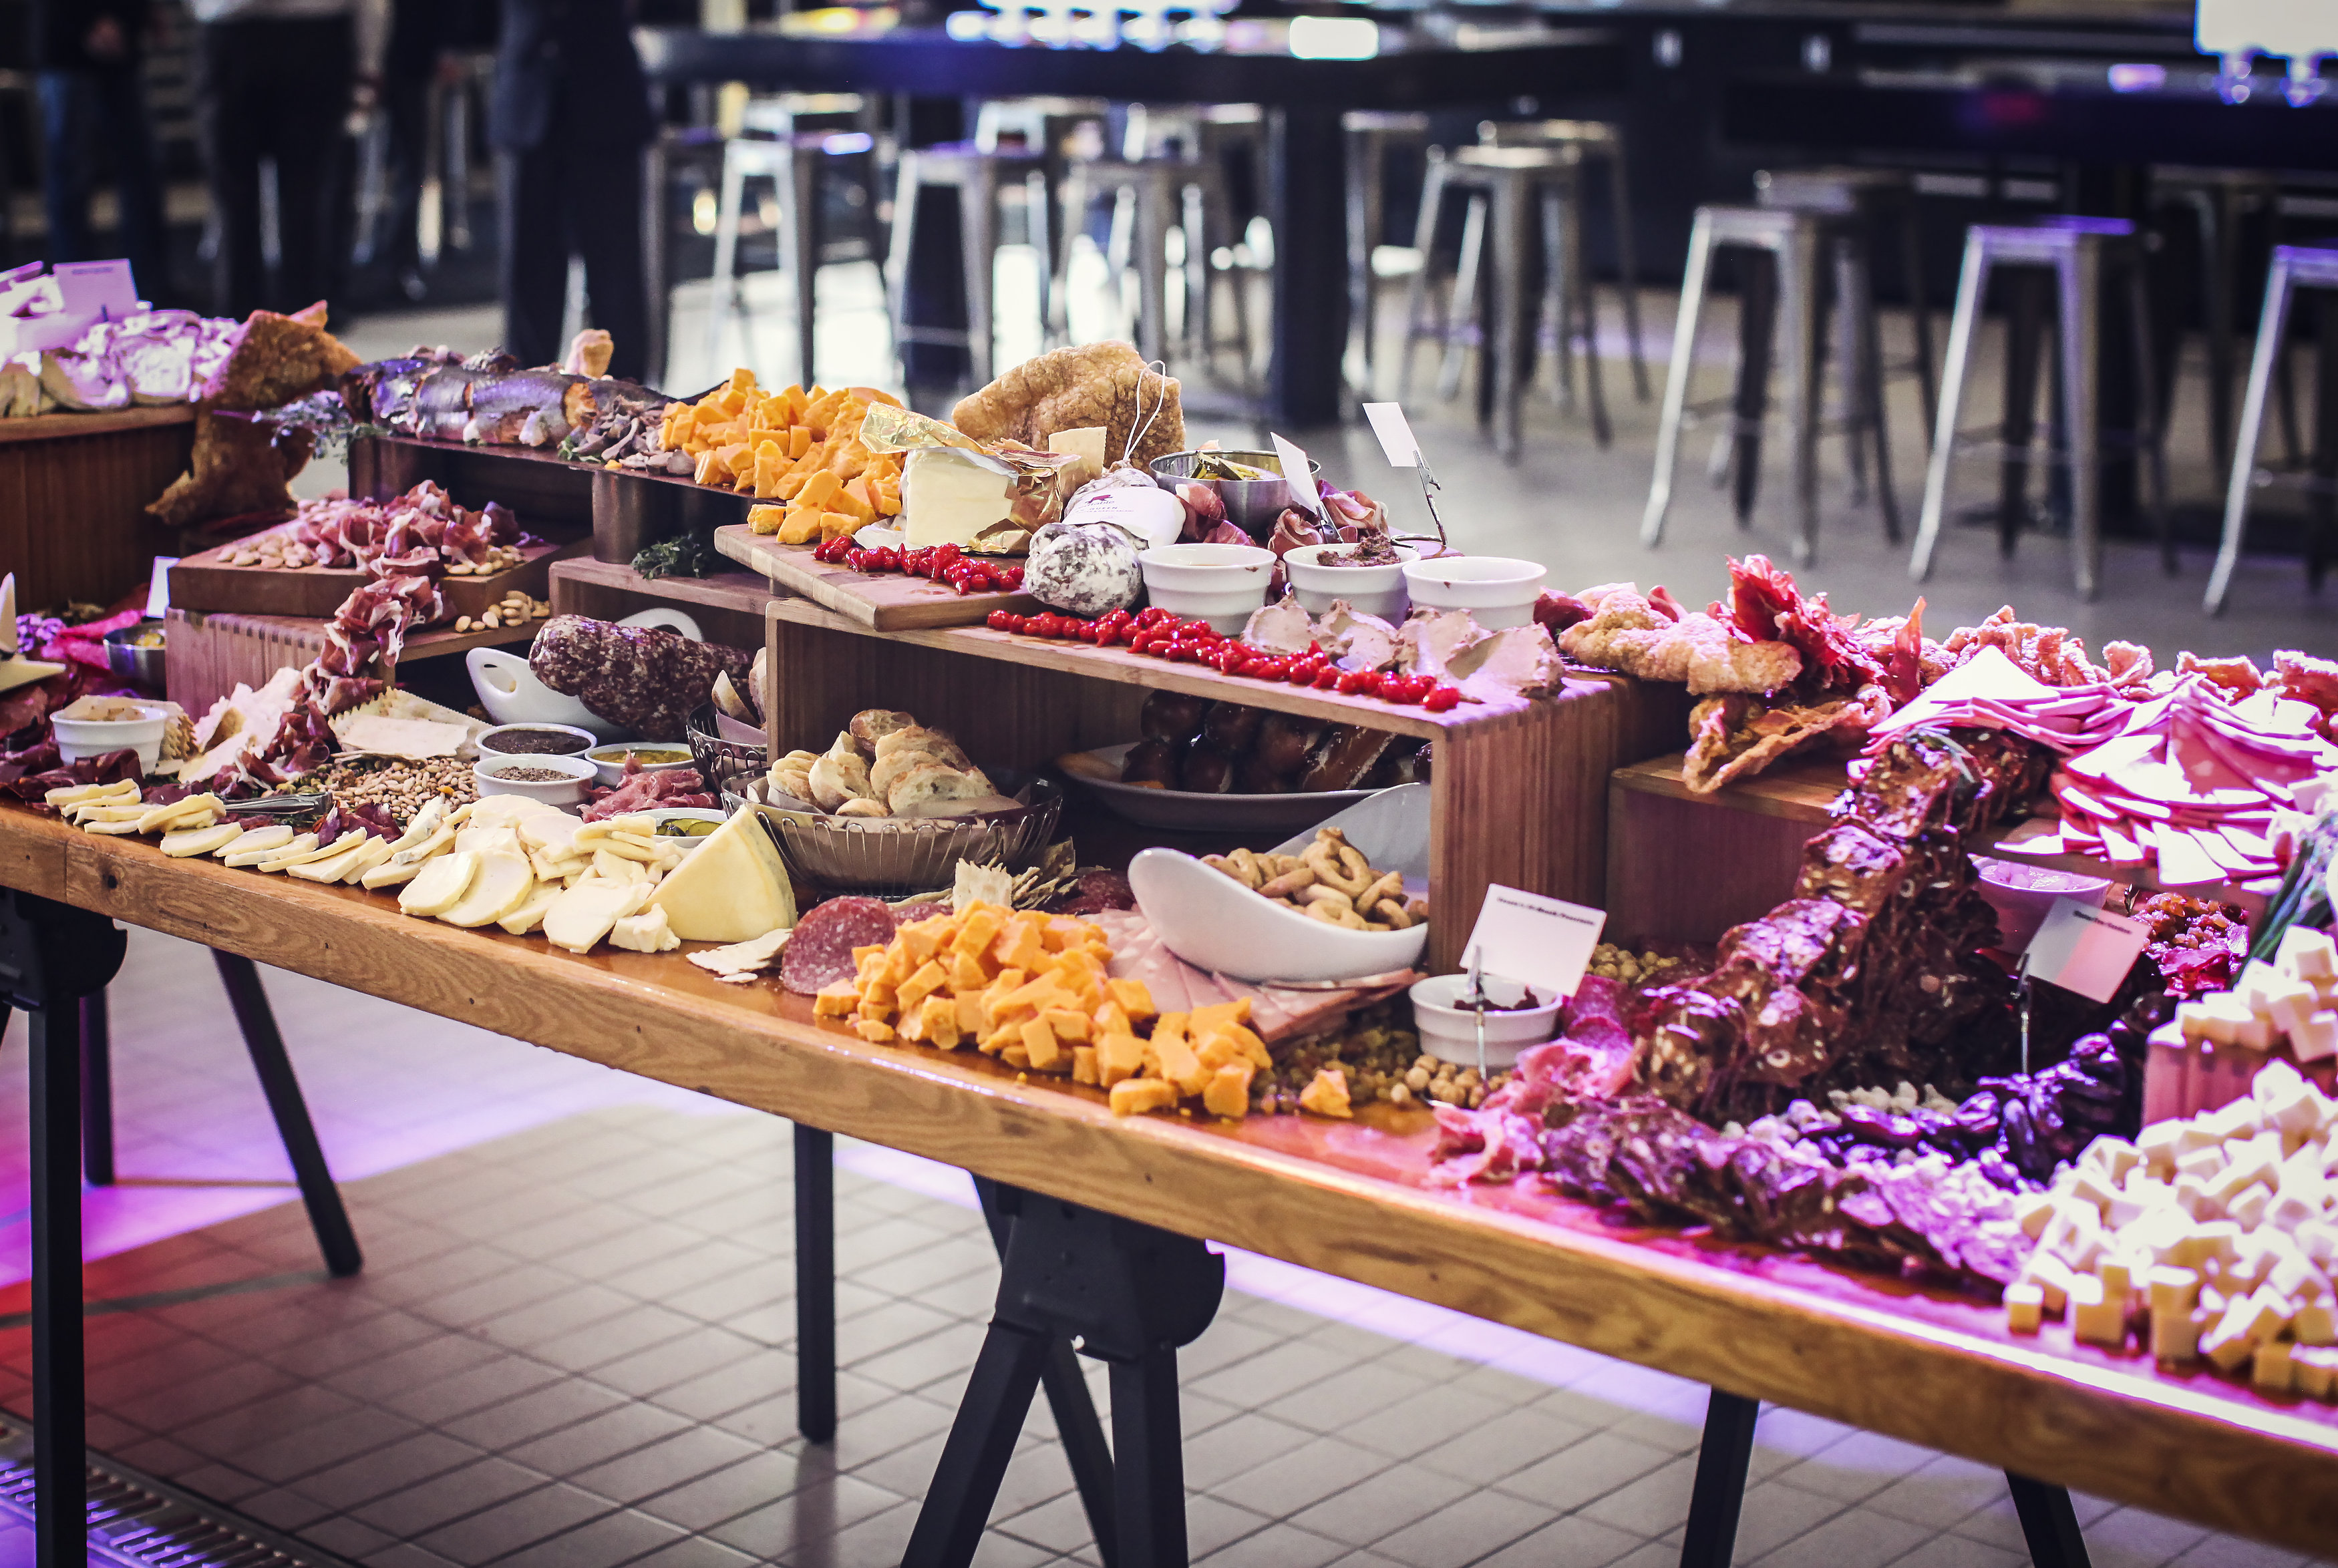 create-catering-meat-and-cheese-buffet-display